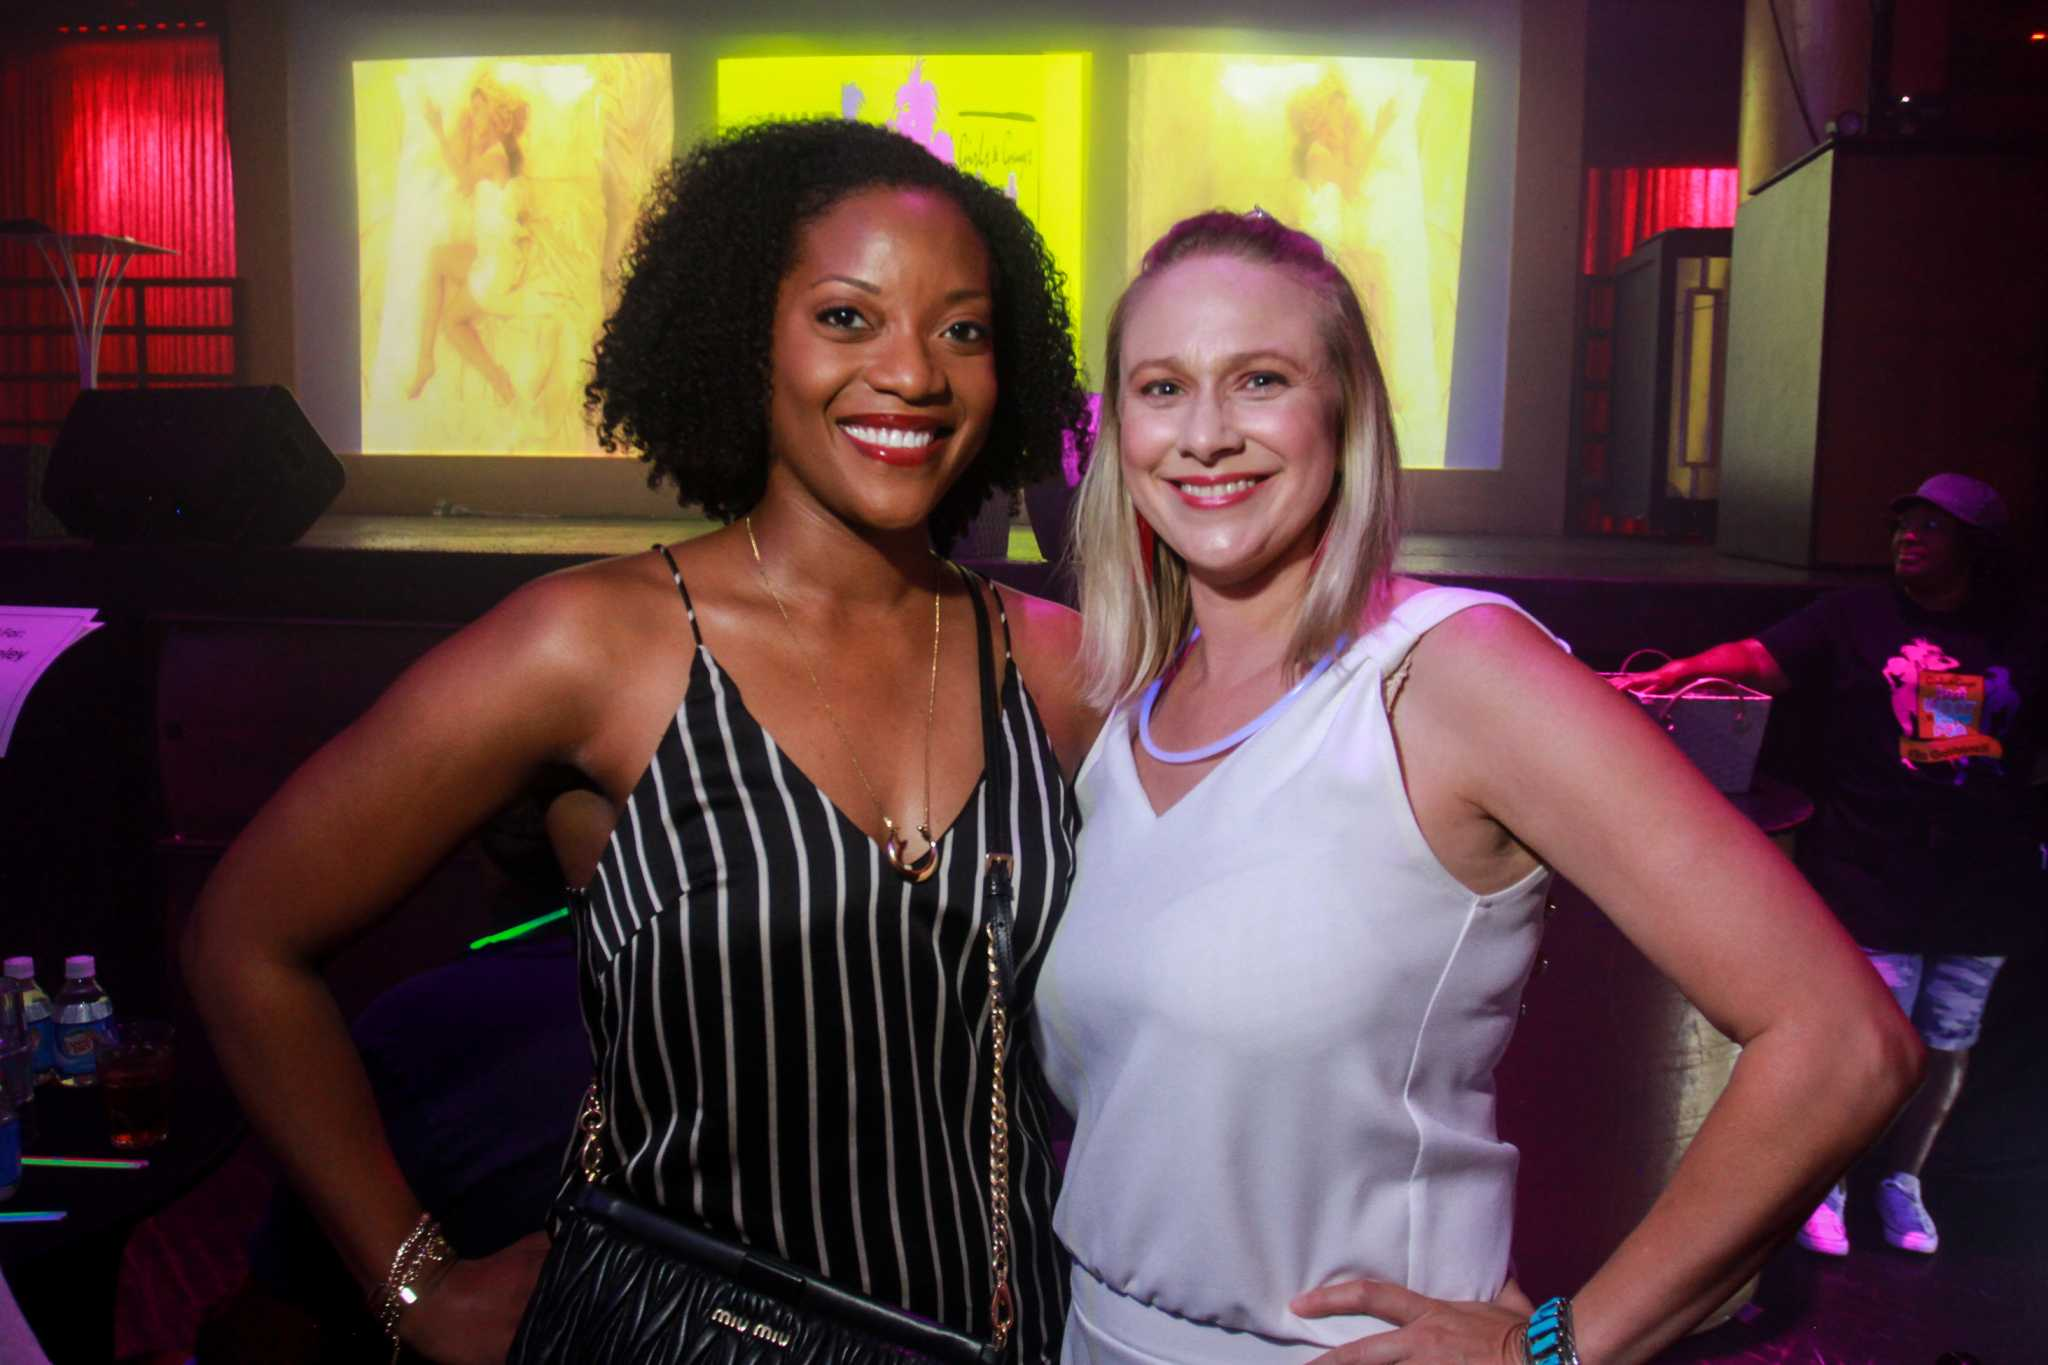 'Spice Girlz' and an Ariana Grande impersonator steal Mint Julep's '80s-themed drag show in Midtown